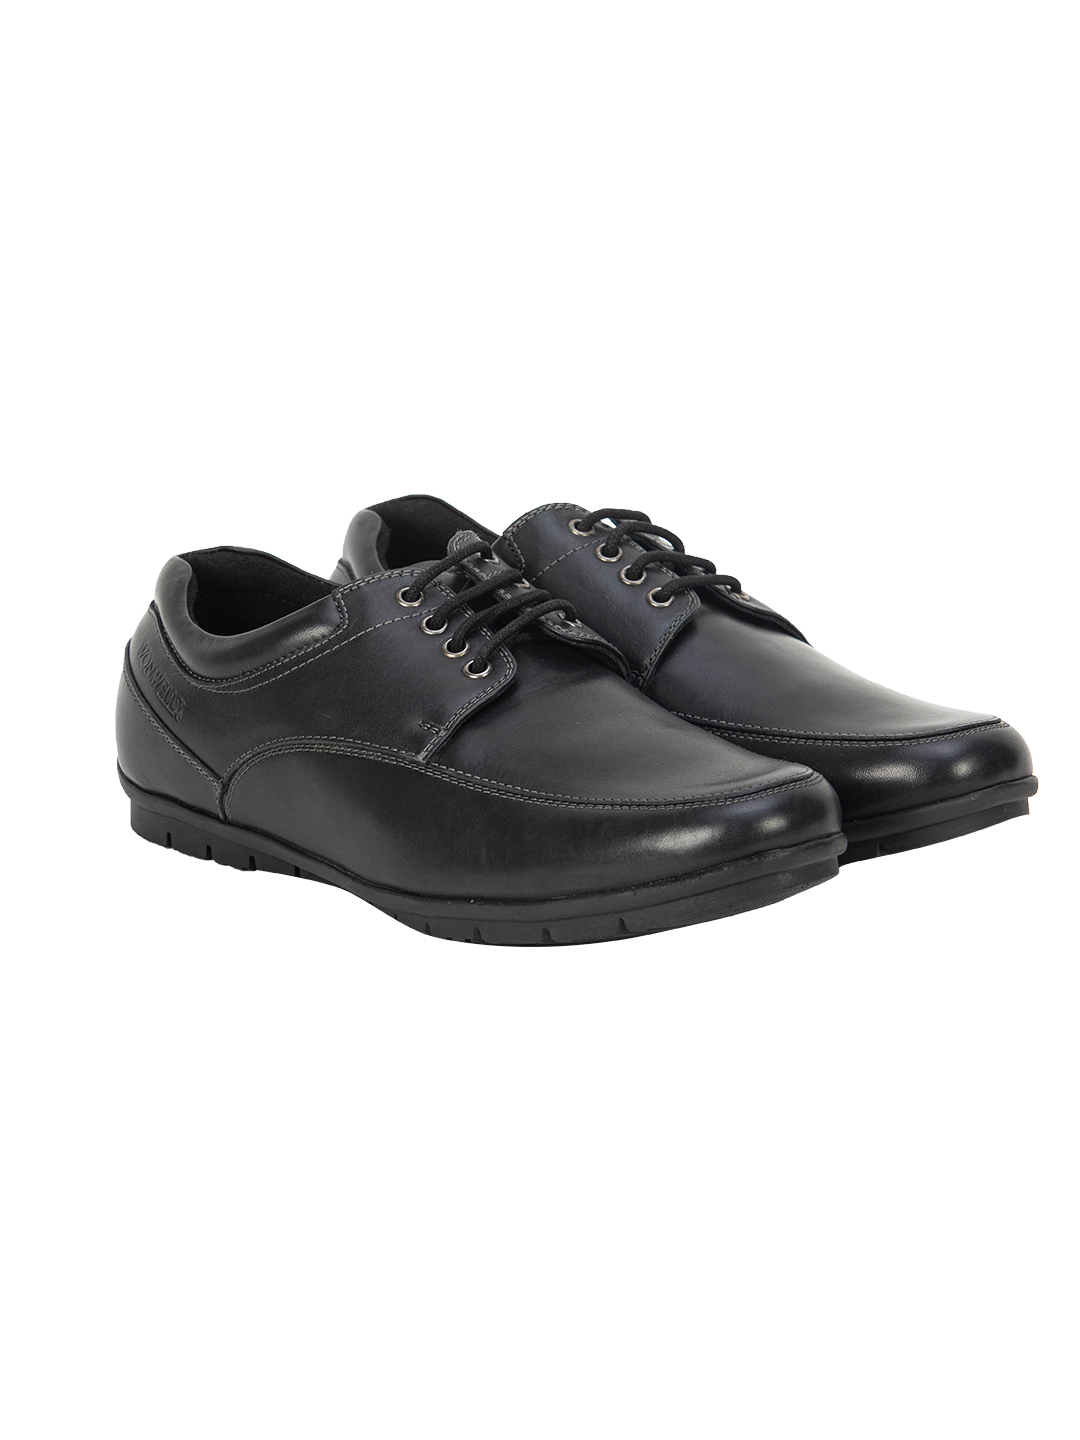 Buy Von Wellx Germany Comfort Black Brayden Shoes Online in Gujarat